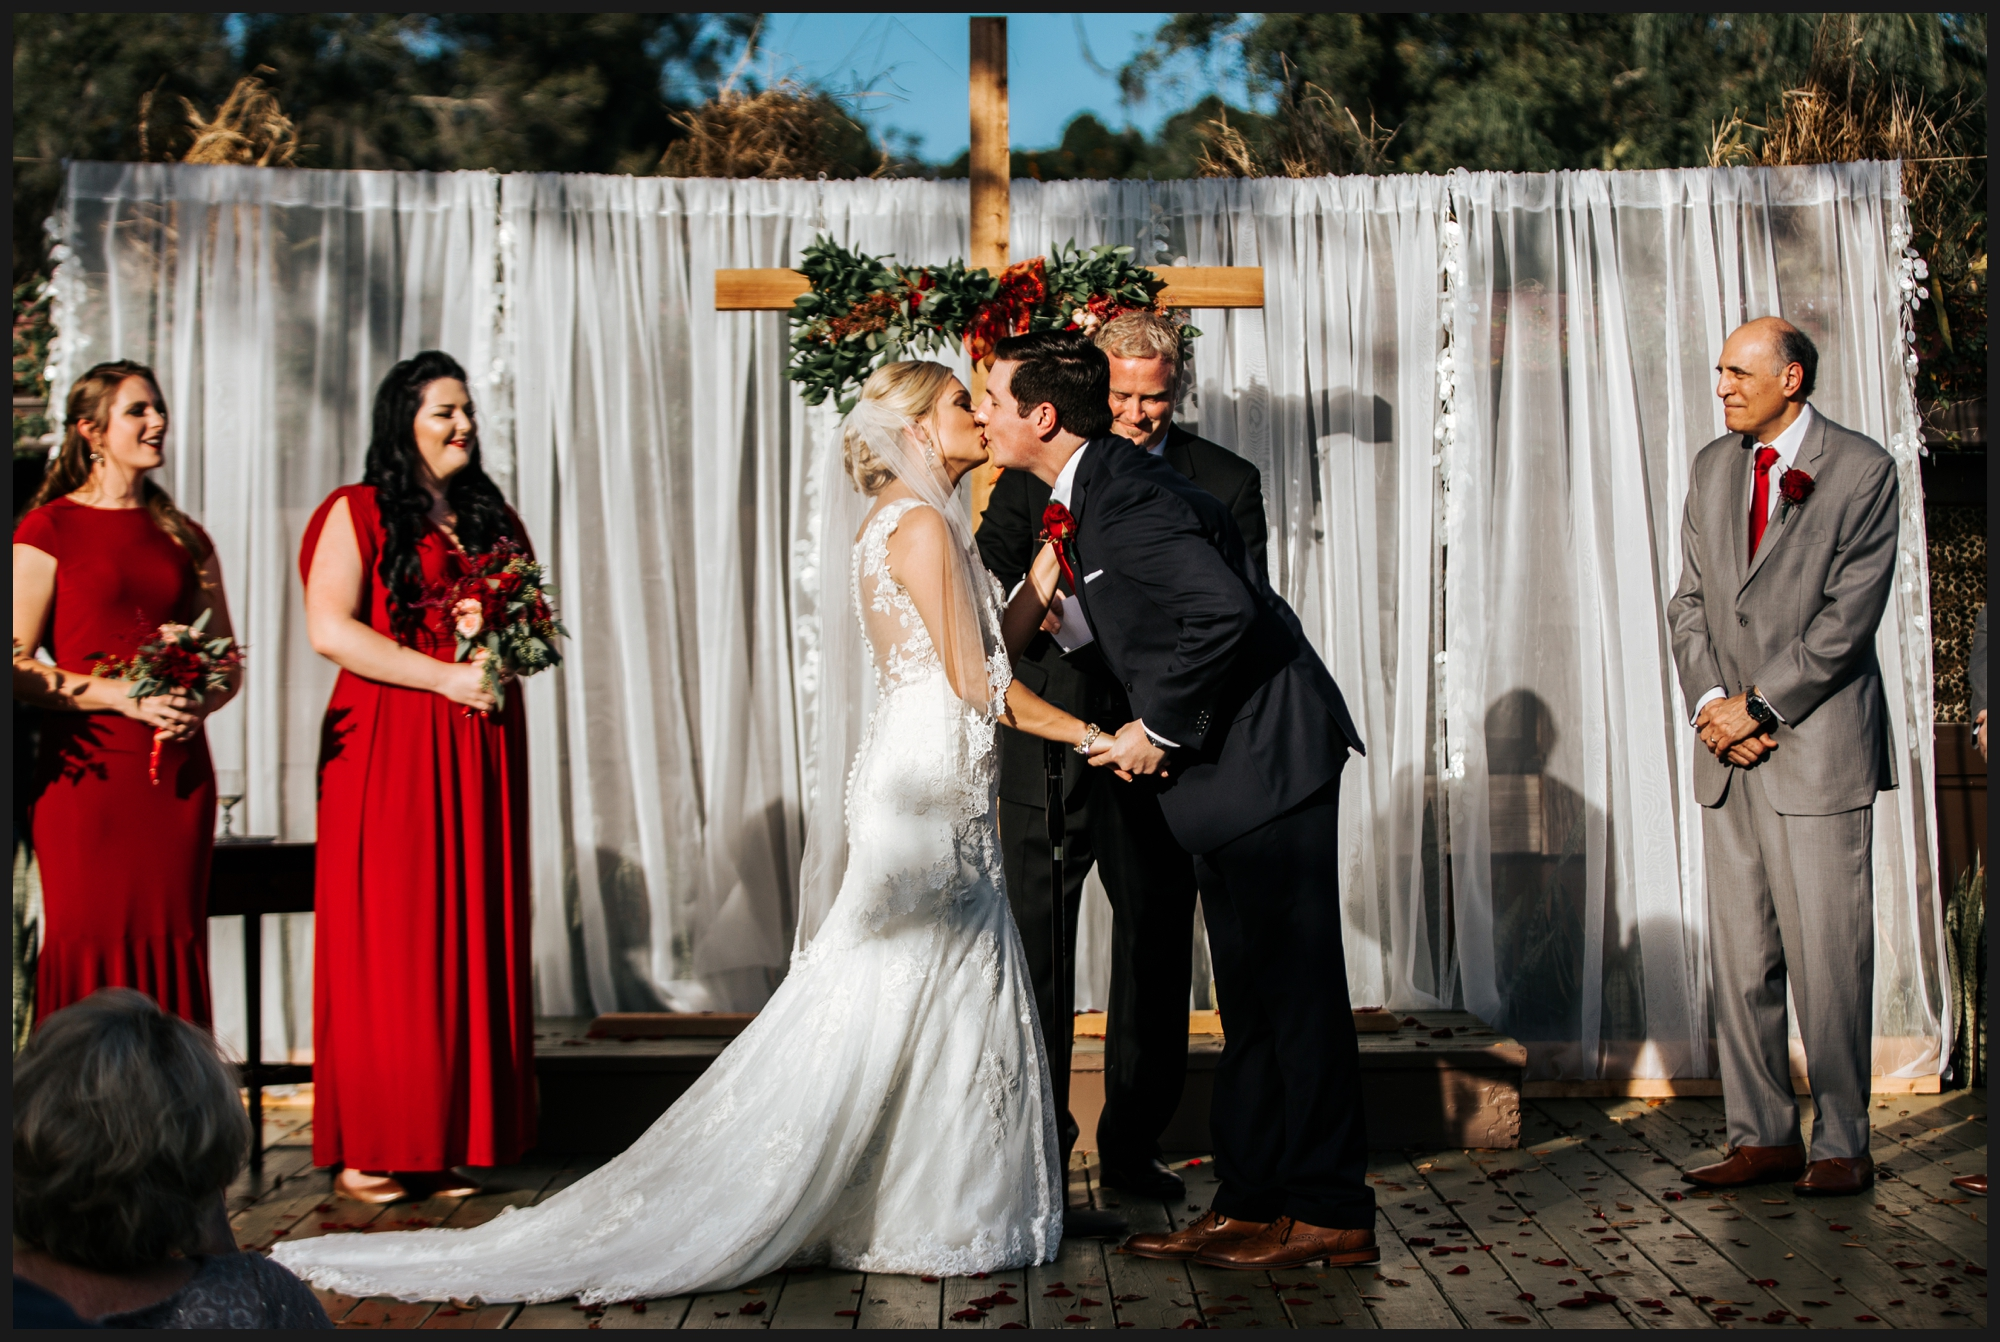 MitchandKatieOrlandoWeddingPhotographer_0072.jpg